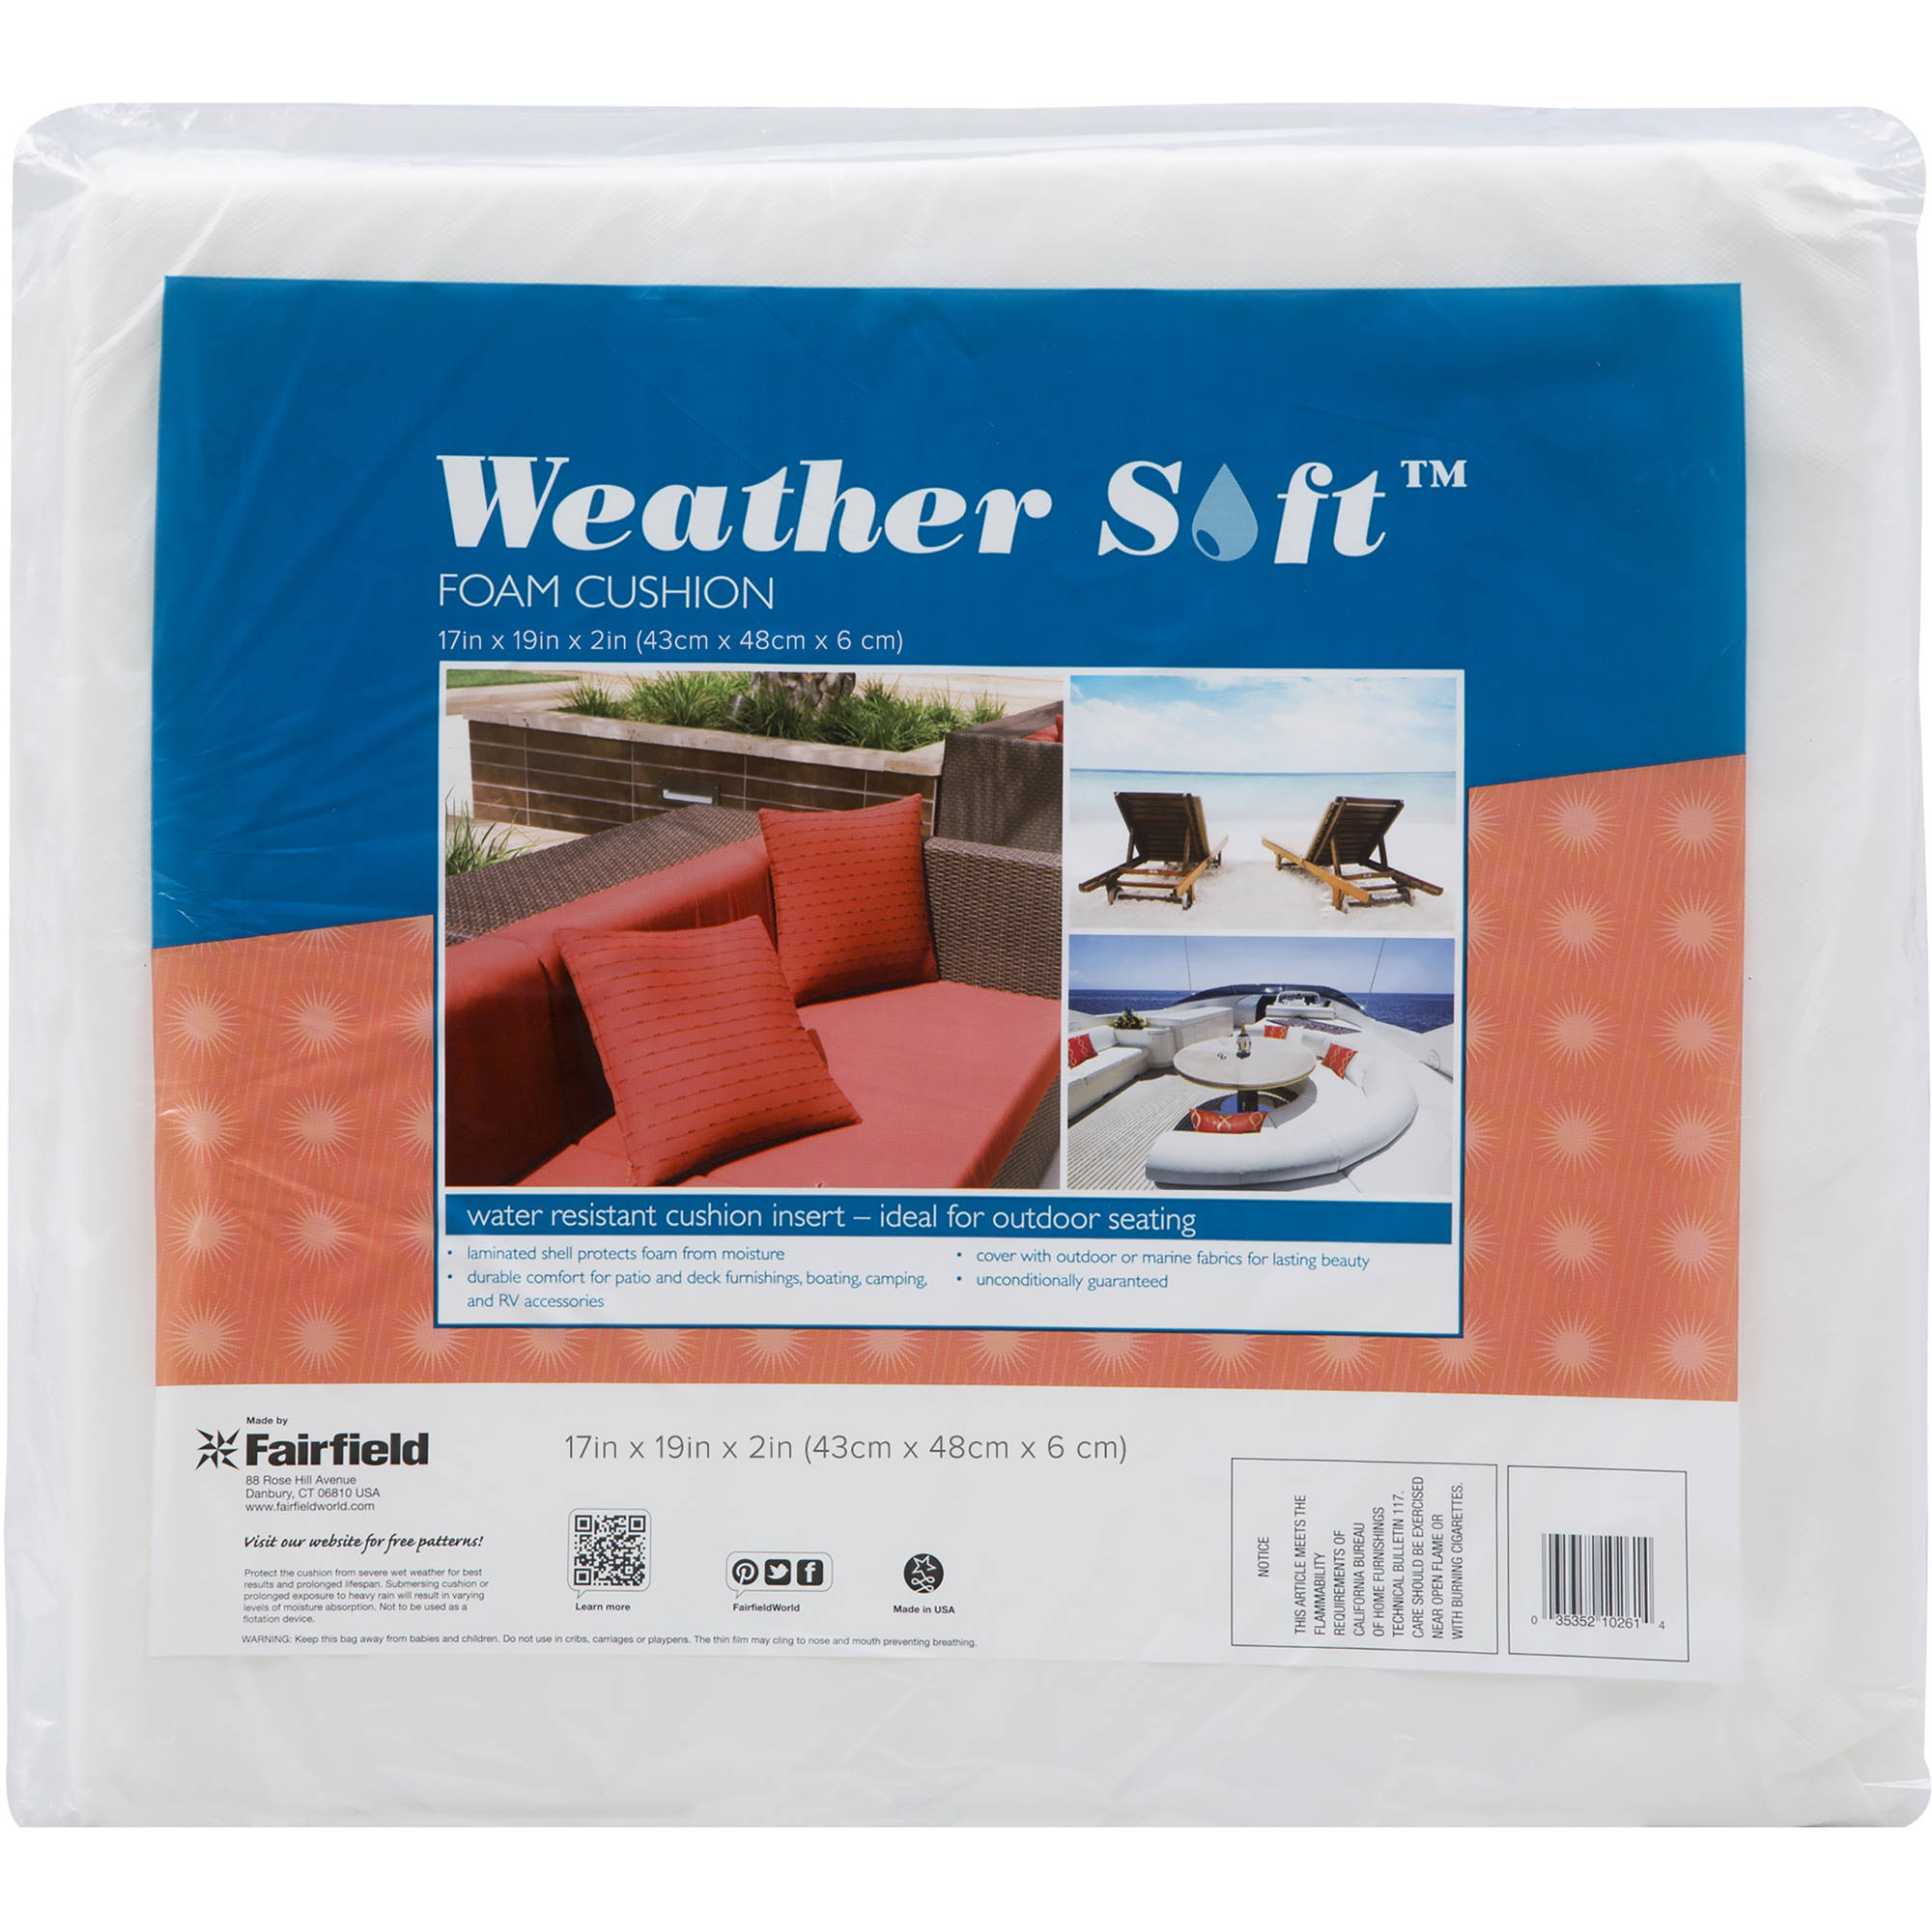 Weather Soft Foam Cushion